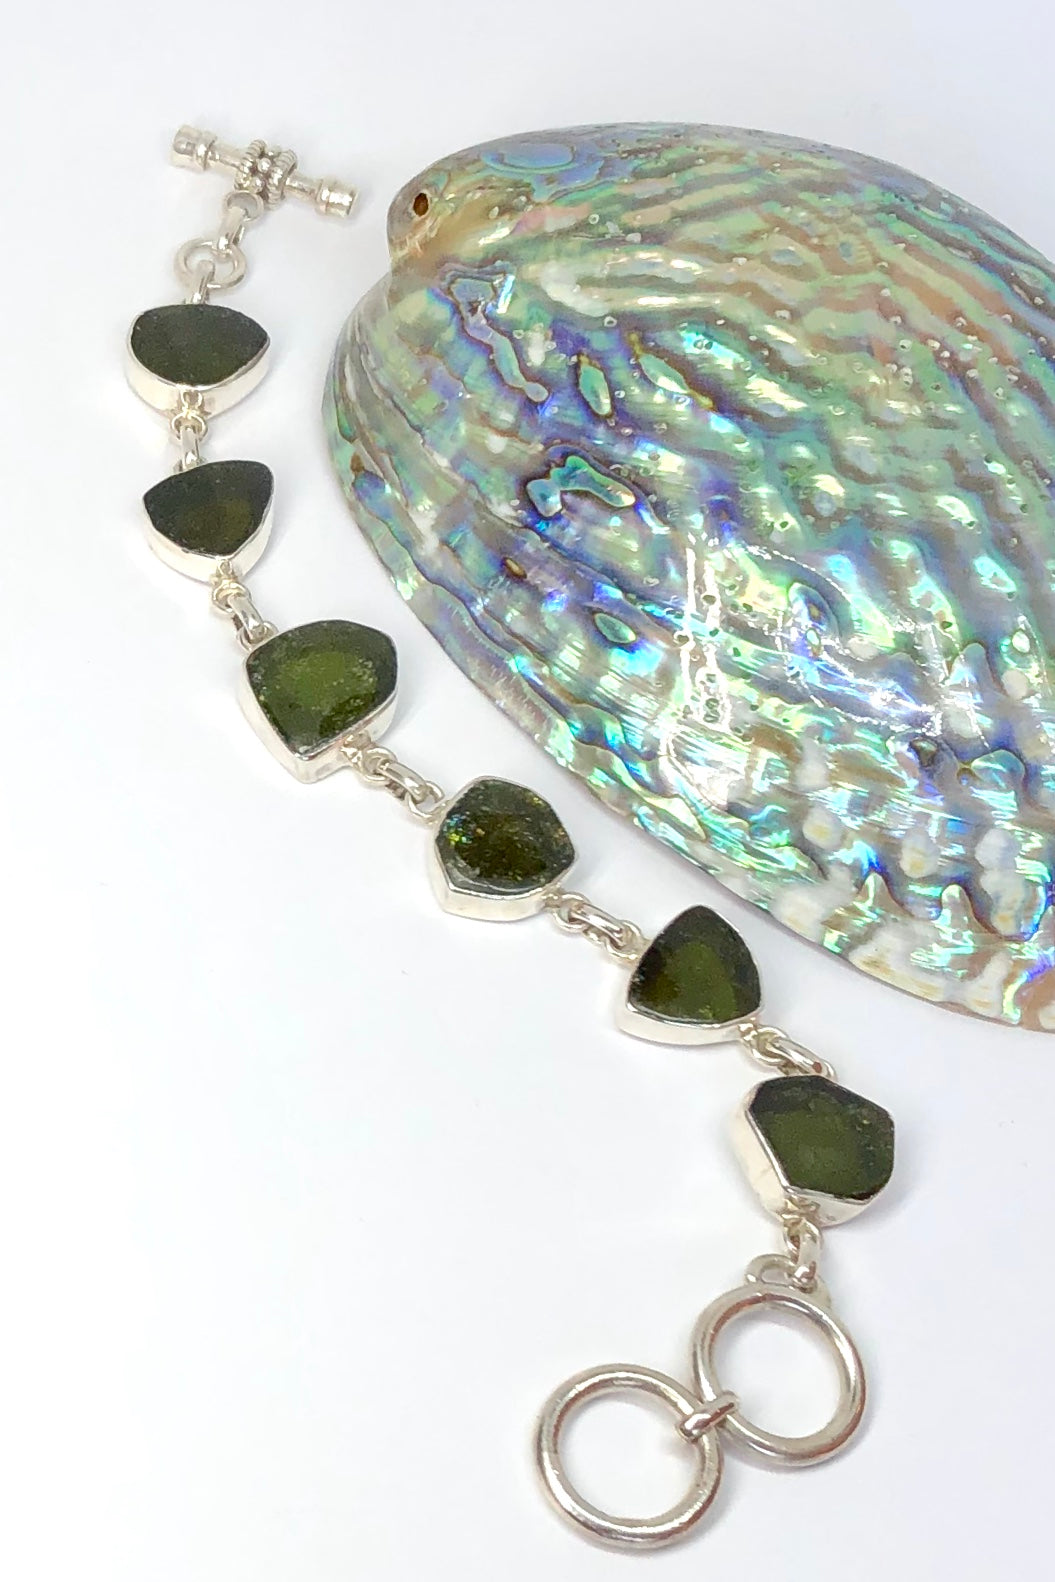 Echo Bracelet Tourmaline Green, each of the six stones  has been individually set and rim set into 925 silver.  The stones are all cut and polished into different shapes and linked in 925 silver.